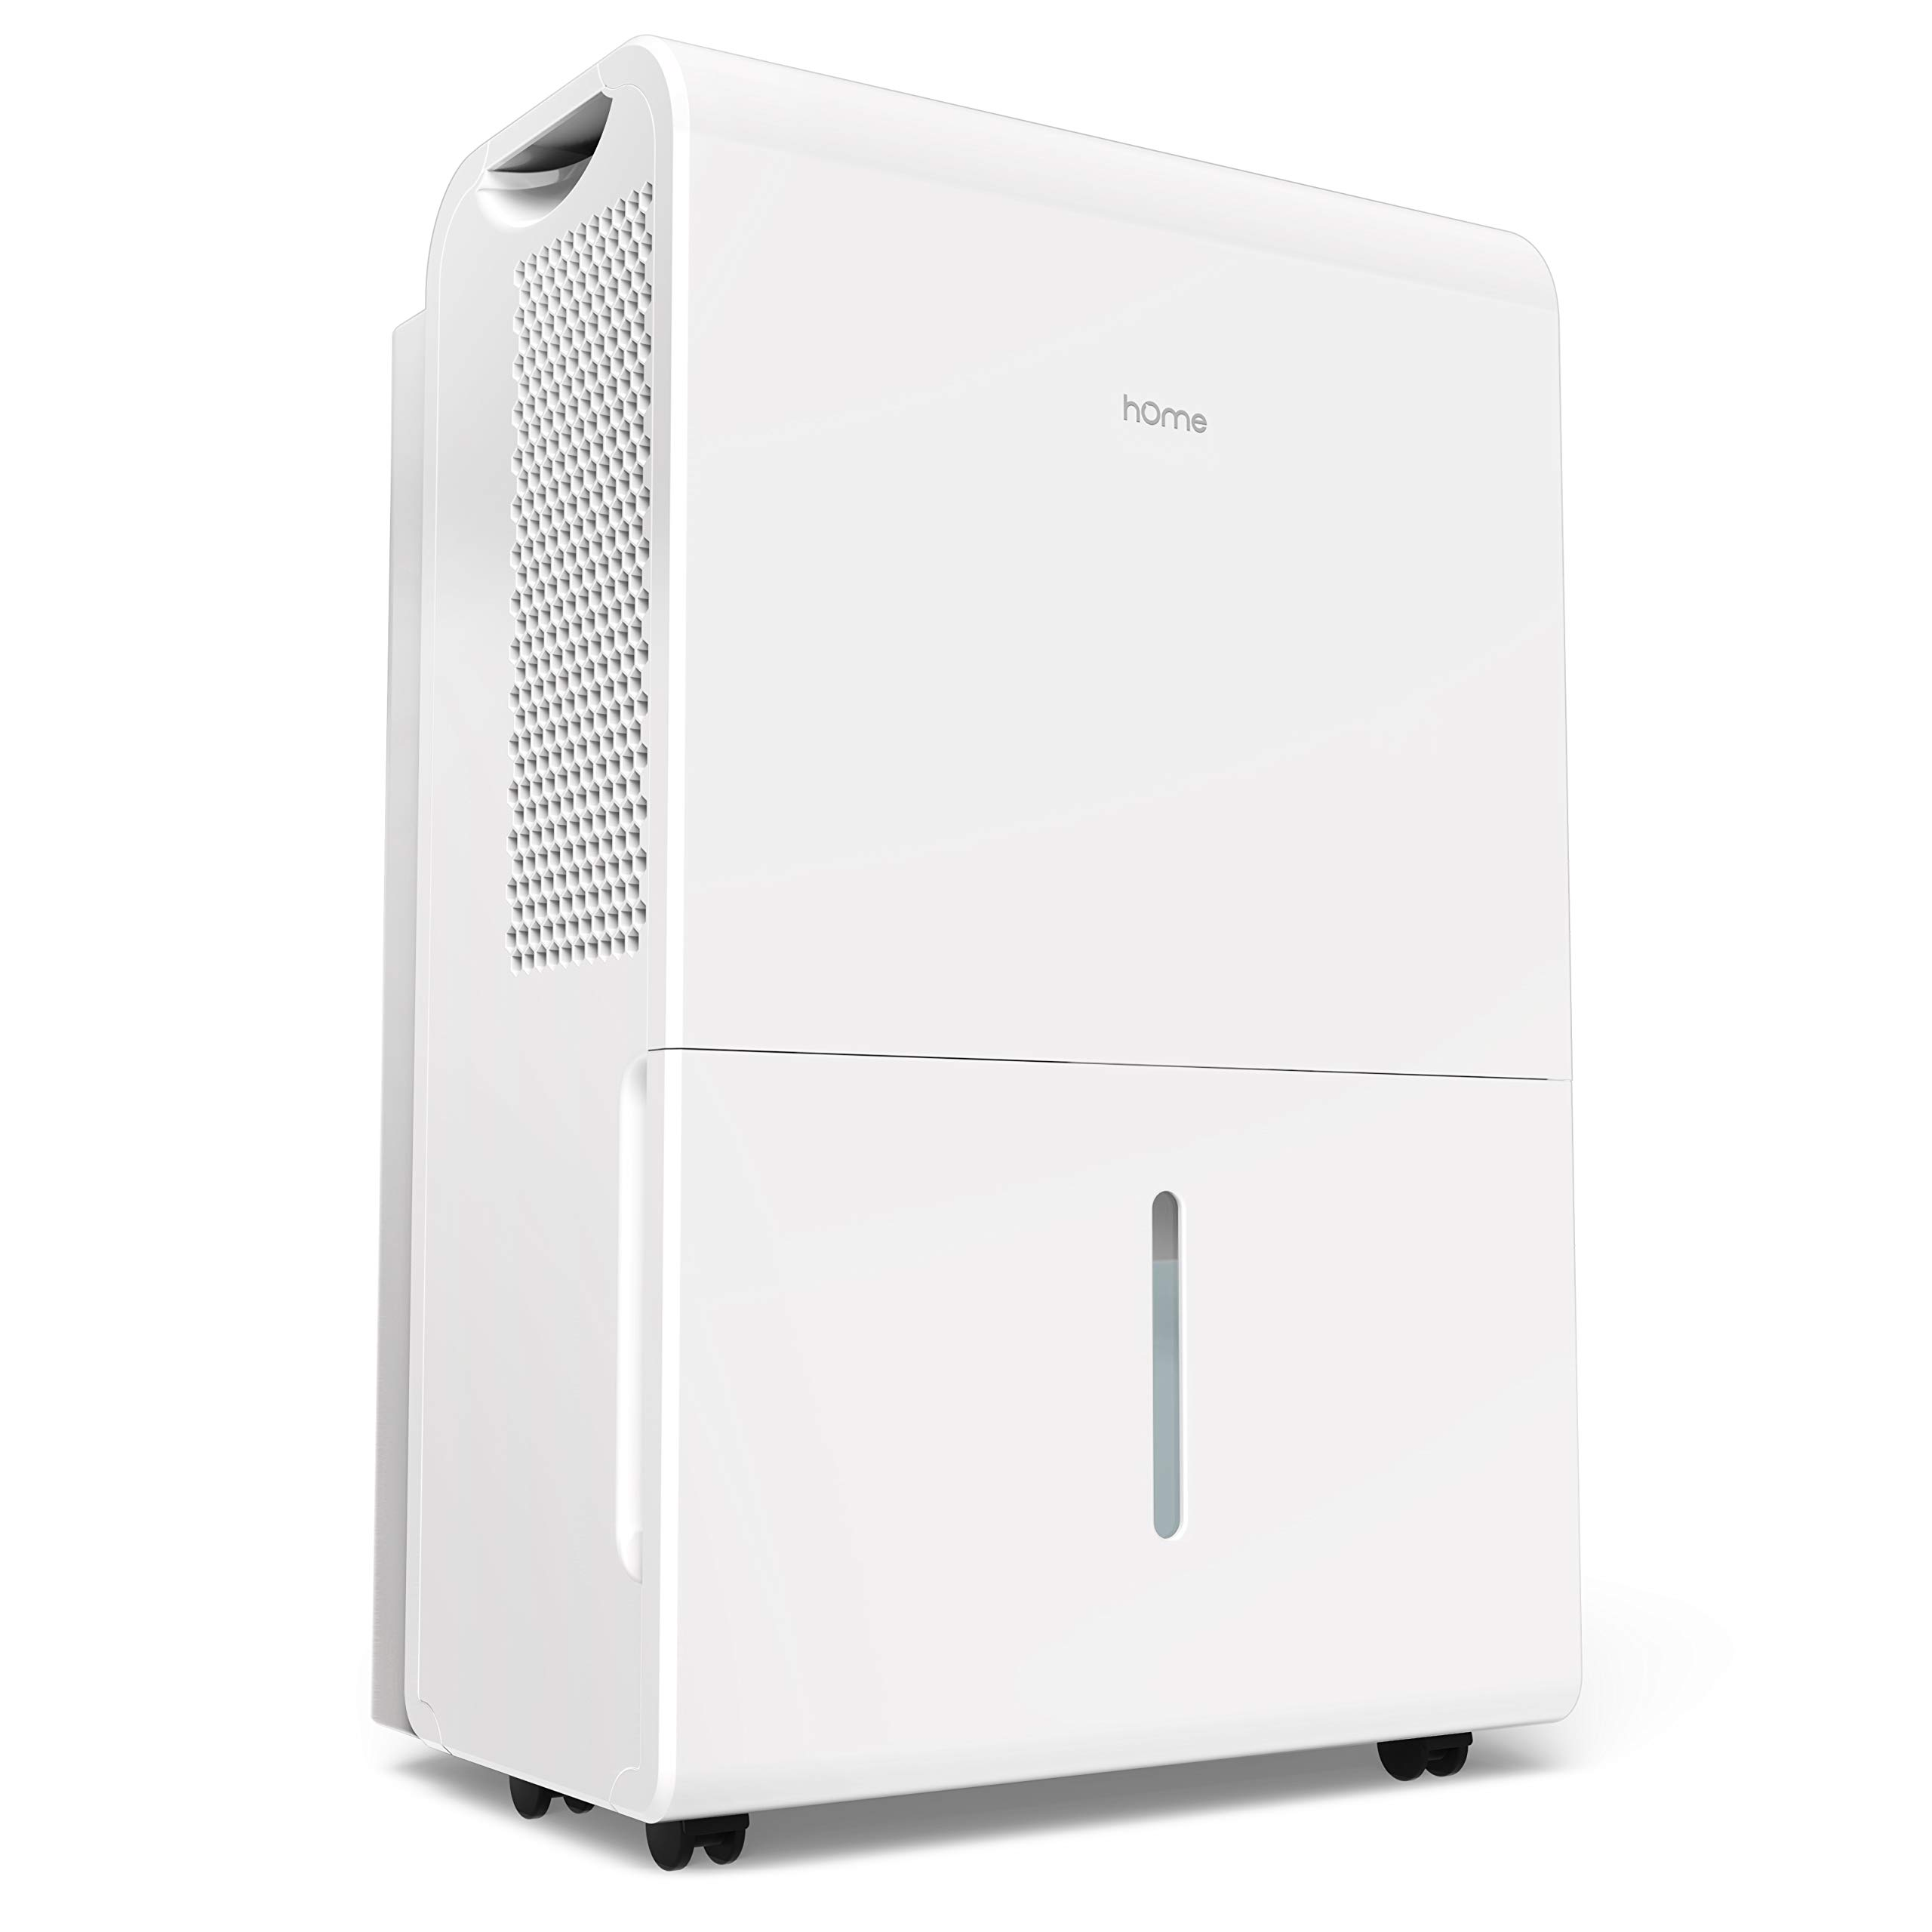 hOmeLabs 1,500 Sq. Ft. Dehumidifier Energy Star Portable Dehumidifier for Medium to Large Rooms and Basements – Efficiently Removes Moisture to Prevent Mold, Mildew and Allergens